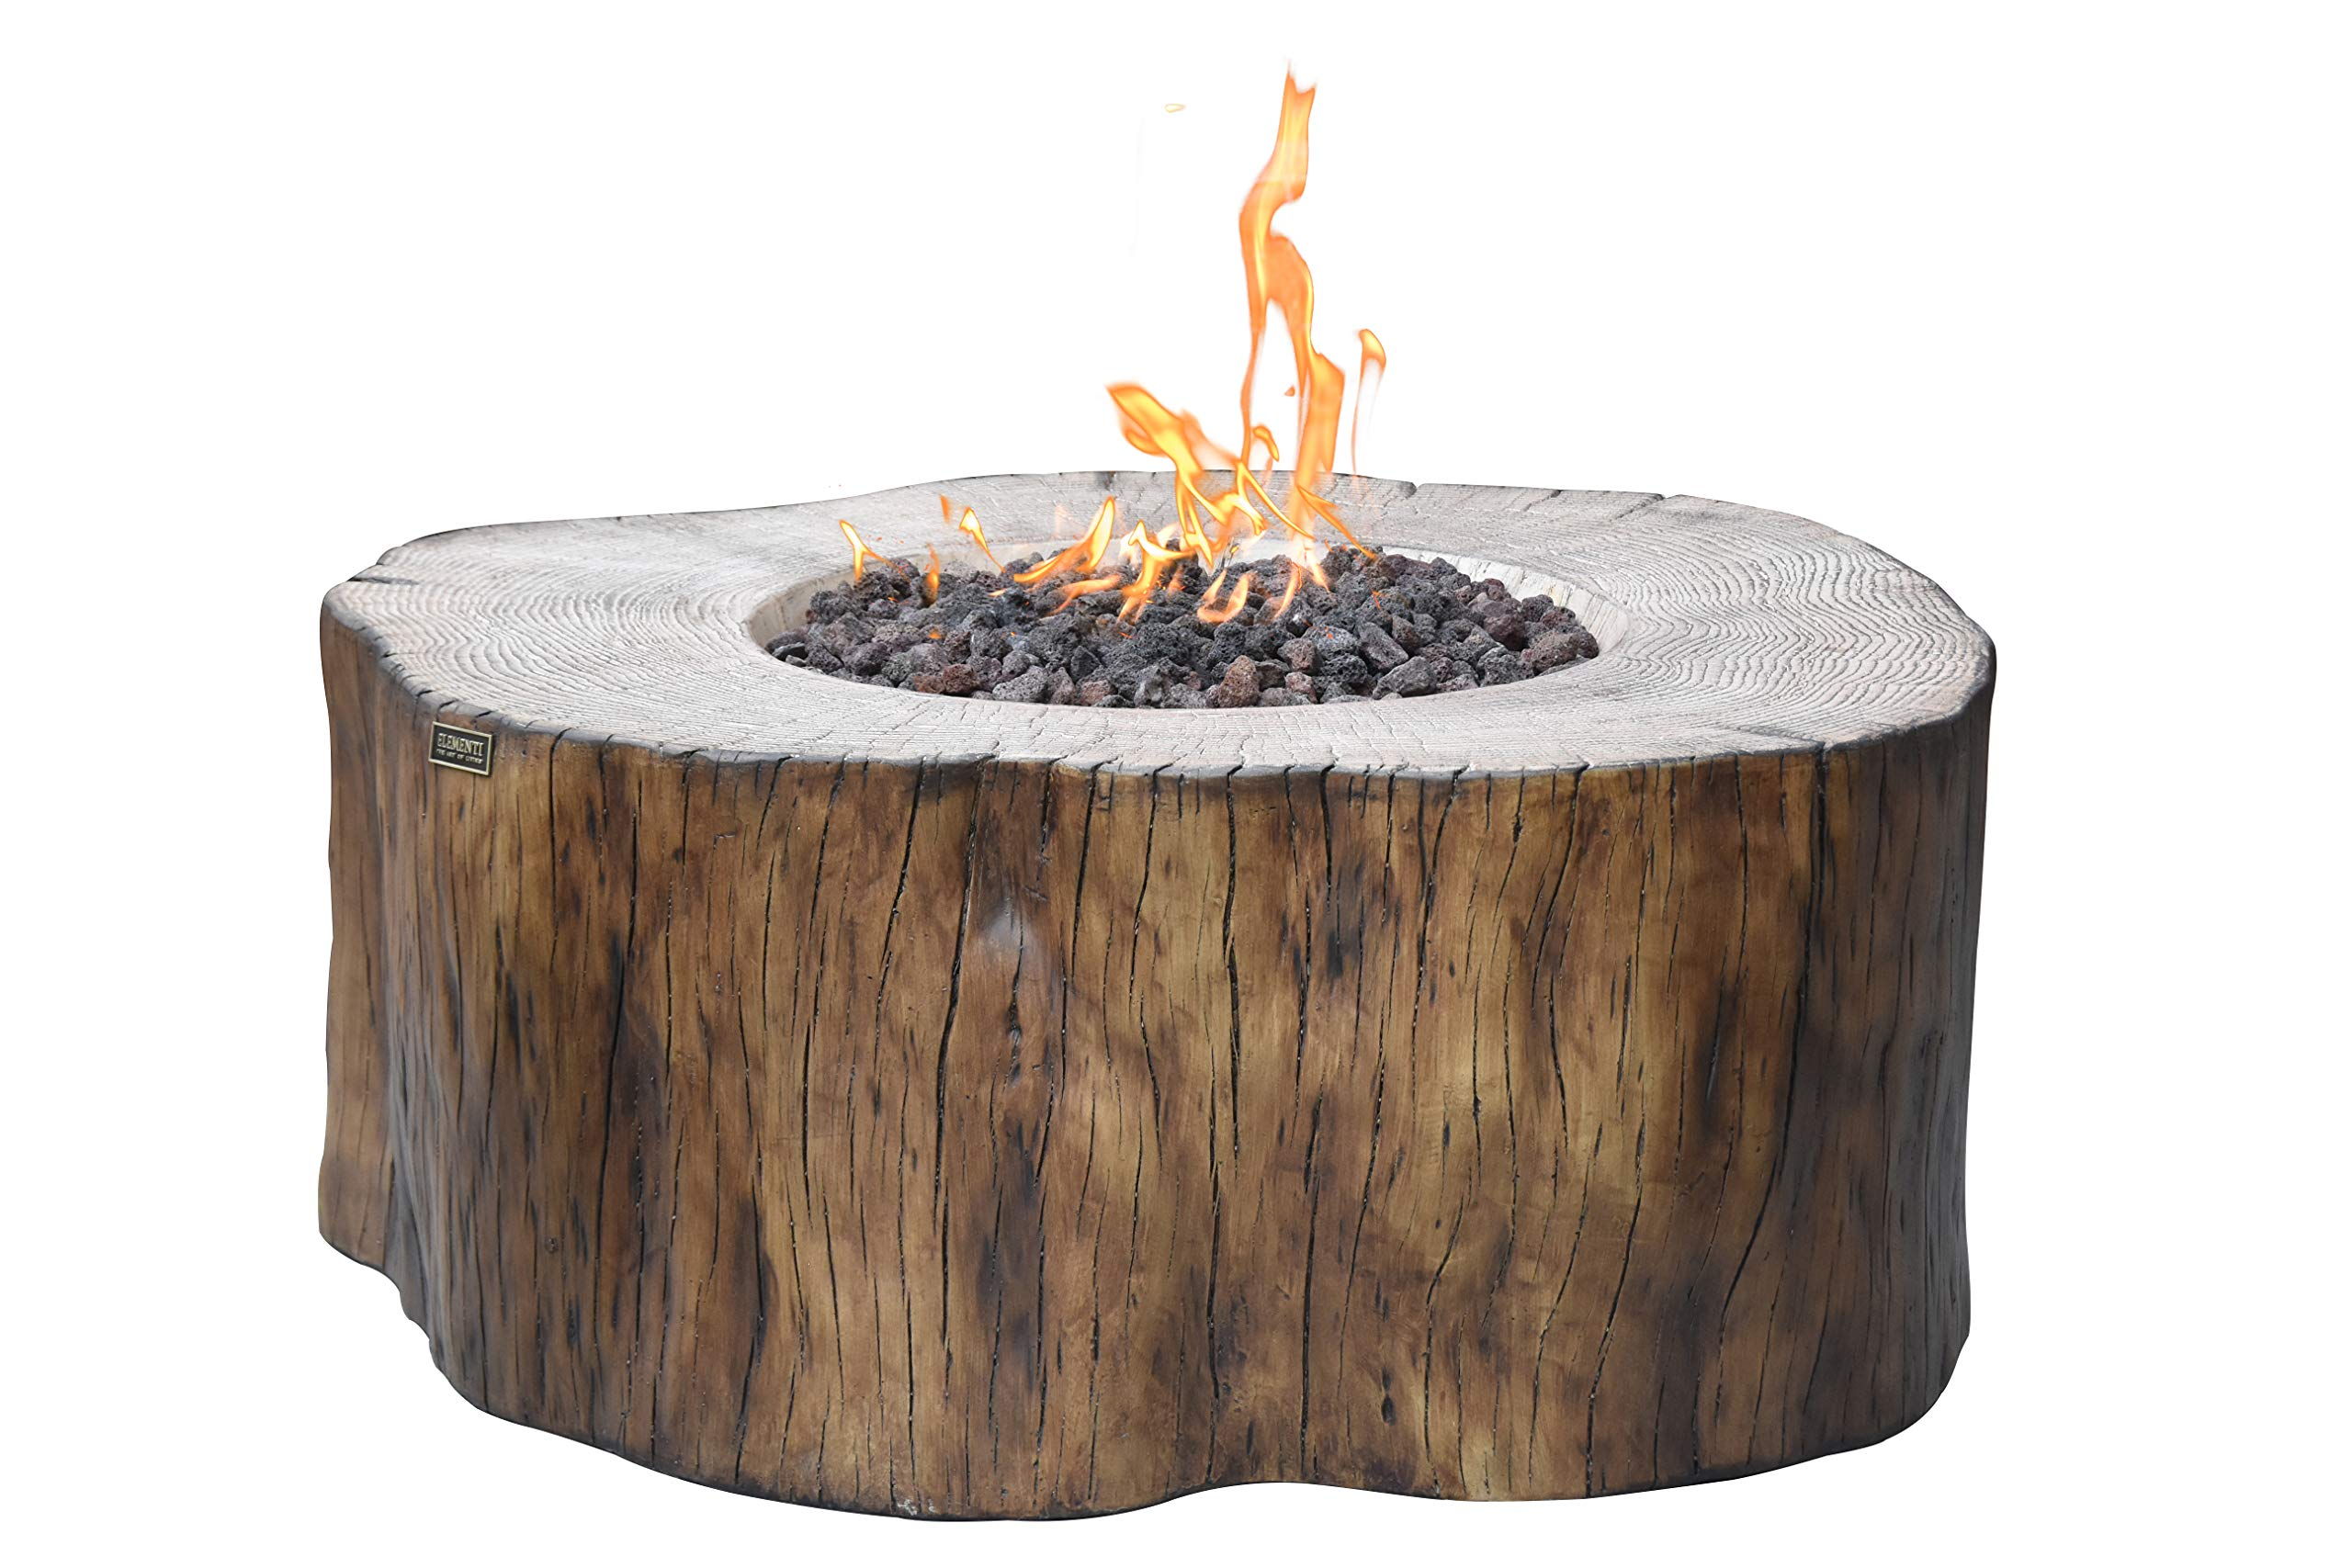 Elementi Outdoor Manchester Fire Pit Table 42 x 39 Inches Driftwood Durable Glass Reinforced Concrete Fireplace Includes Burner Lava Rock Canvas Cover - Liquid Propane by Elementi